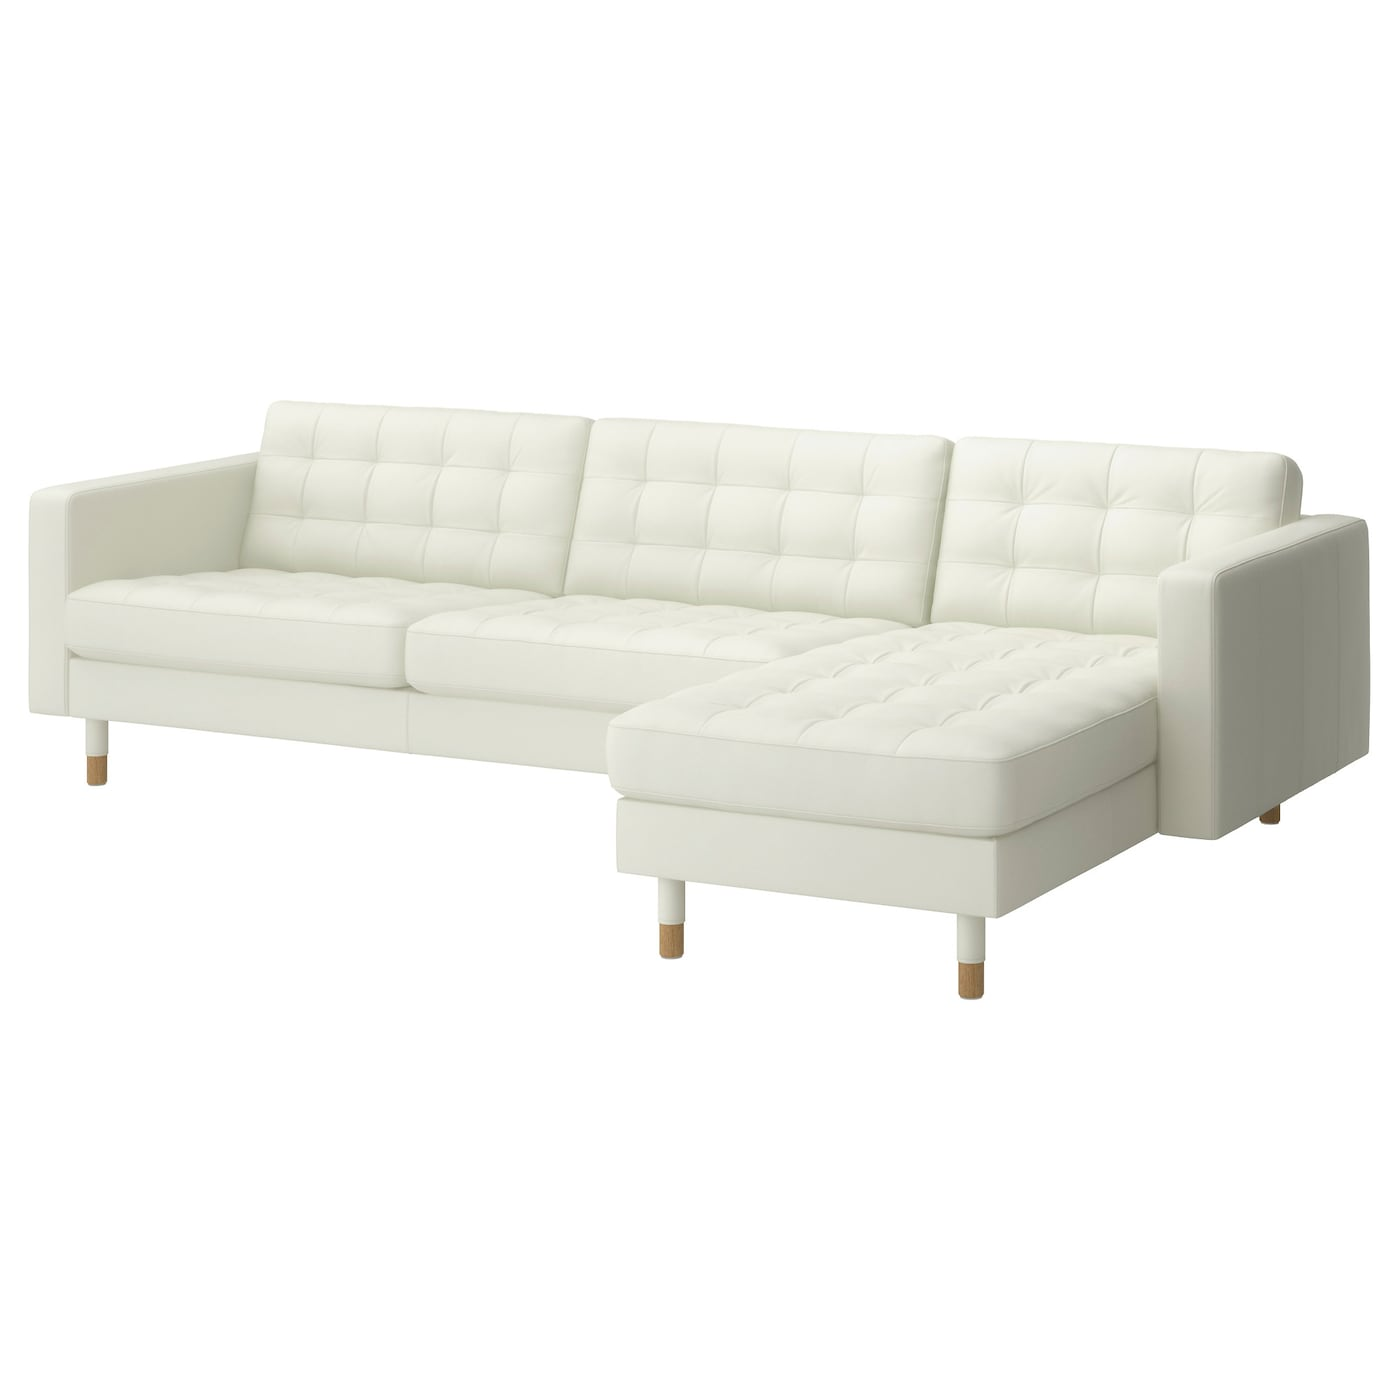 Landskrona three seat sofa and chaise longue grann bomstad for Chaise longue sofa cama